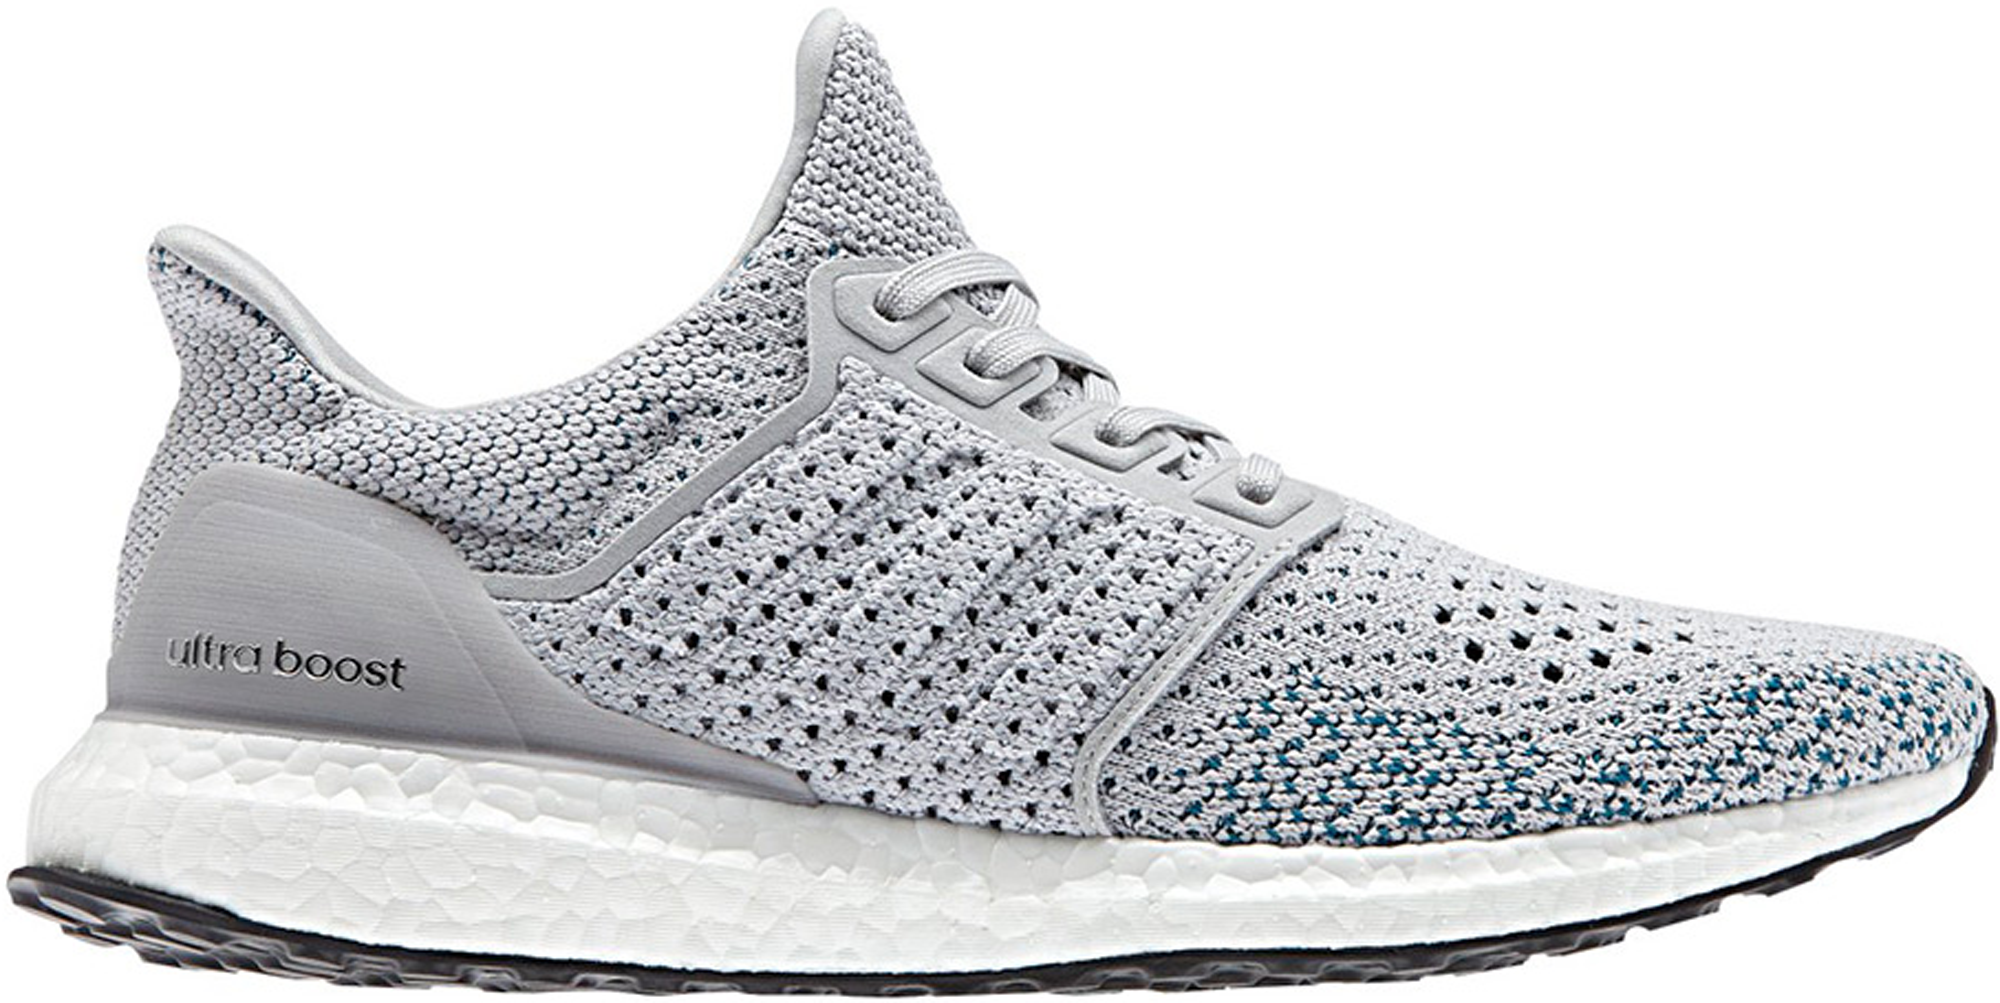 newest 87484 d109d coupon code for adidas ultra boost next 968fa 2ba22